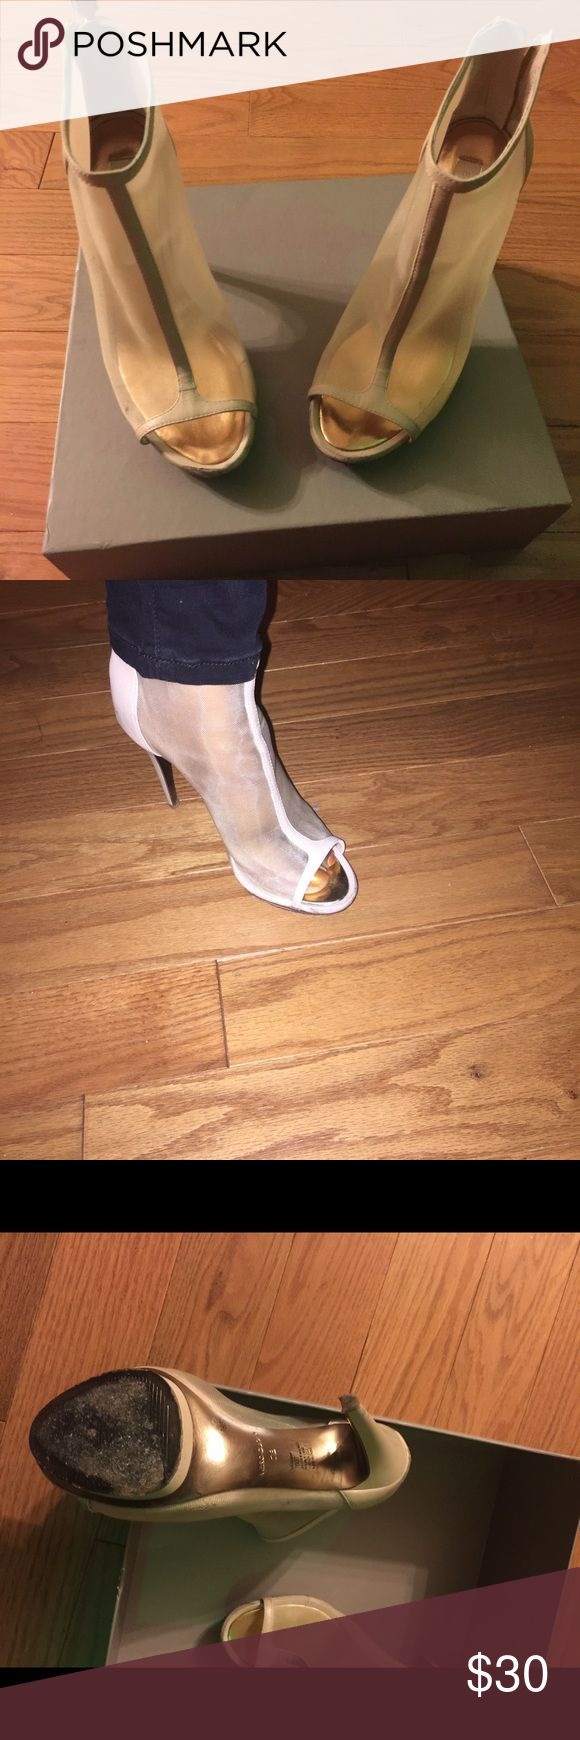 Sheer Boots Sheer Mesh/Nappa Nude Ankle Boot trimmed in leather.  Style name: Ma-Gamma.  Slightly worn with a few scratches on the leather but not noticeable. Zip up in the back with gold zipper. BCBGMaxAzria Shoes Ankle Boots & Booties